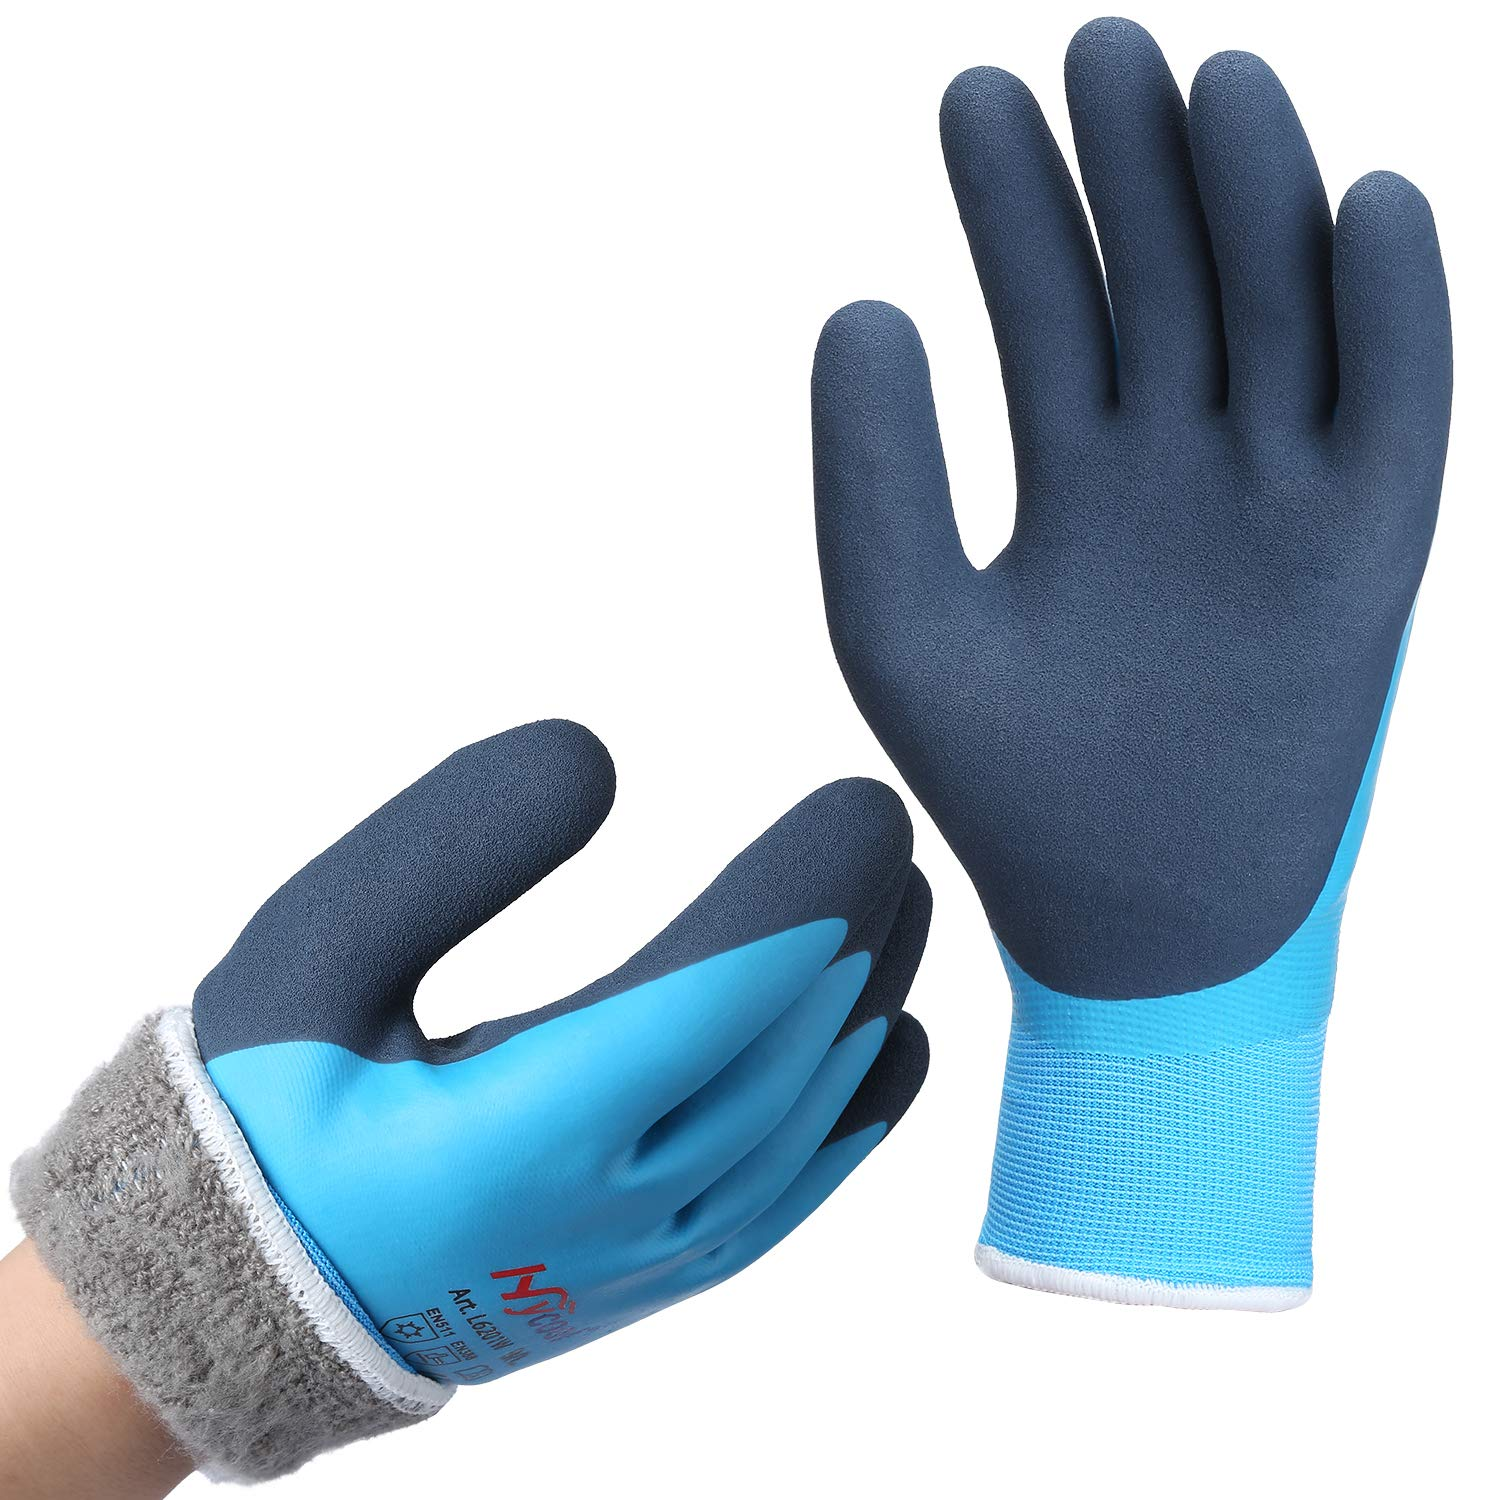 DS Safety Men's Waterproof Thermal Winter Work Gloves Double Coated Nylon Reinforced Insulated Gloves with Acrylic Terry Brushed Lined and 15 Gaugeblue Hycool Firm Grip - Size Small